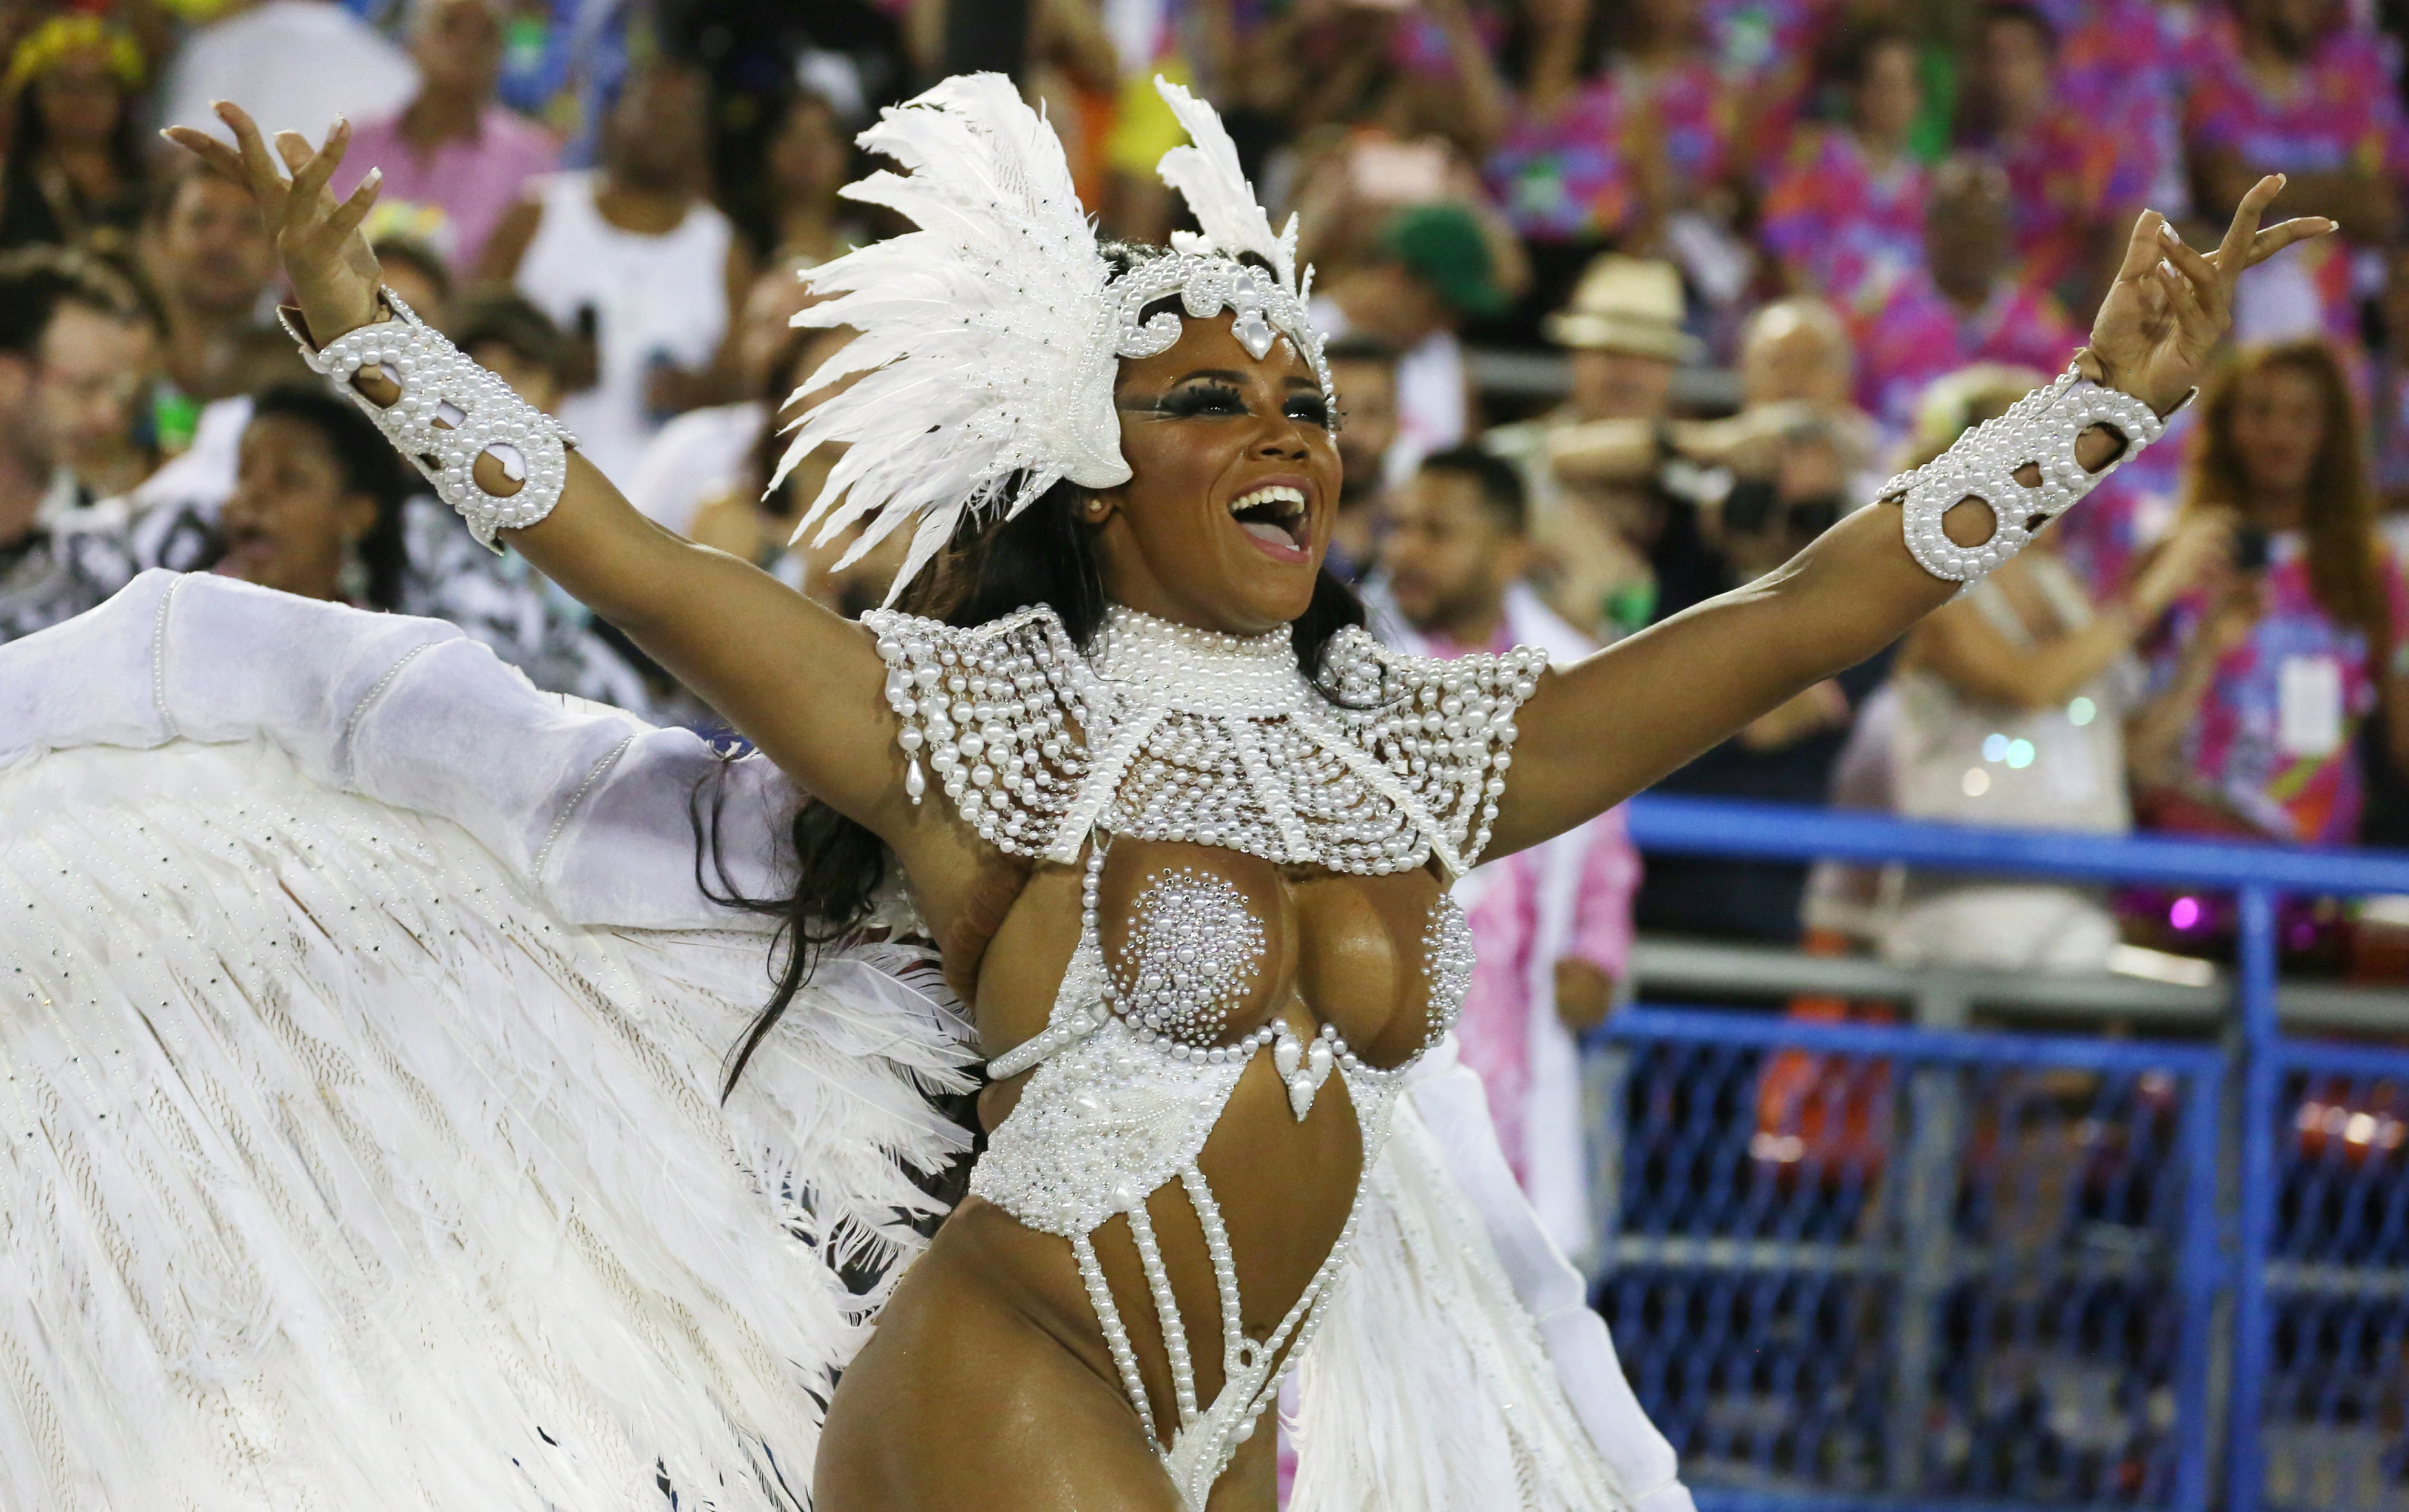 Drum queen Evelyn Bastos from Mangueira samba school performs during the second night of the carnival parade at the Sambadrome in Rio de Janeiro